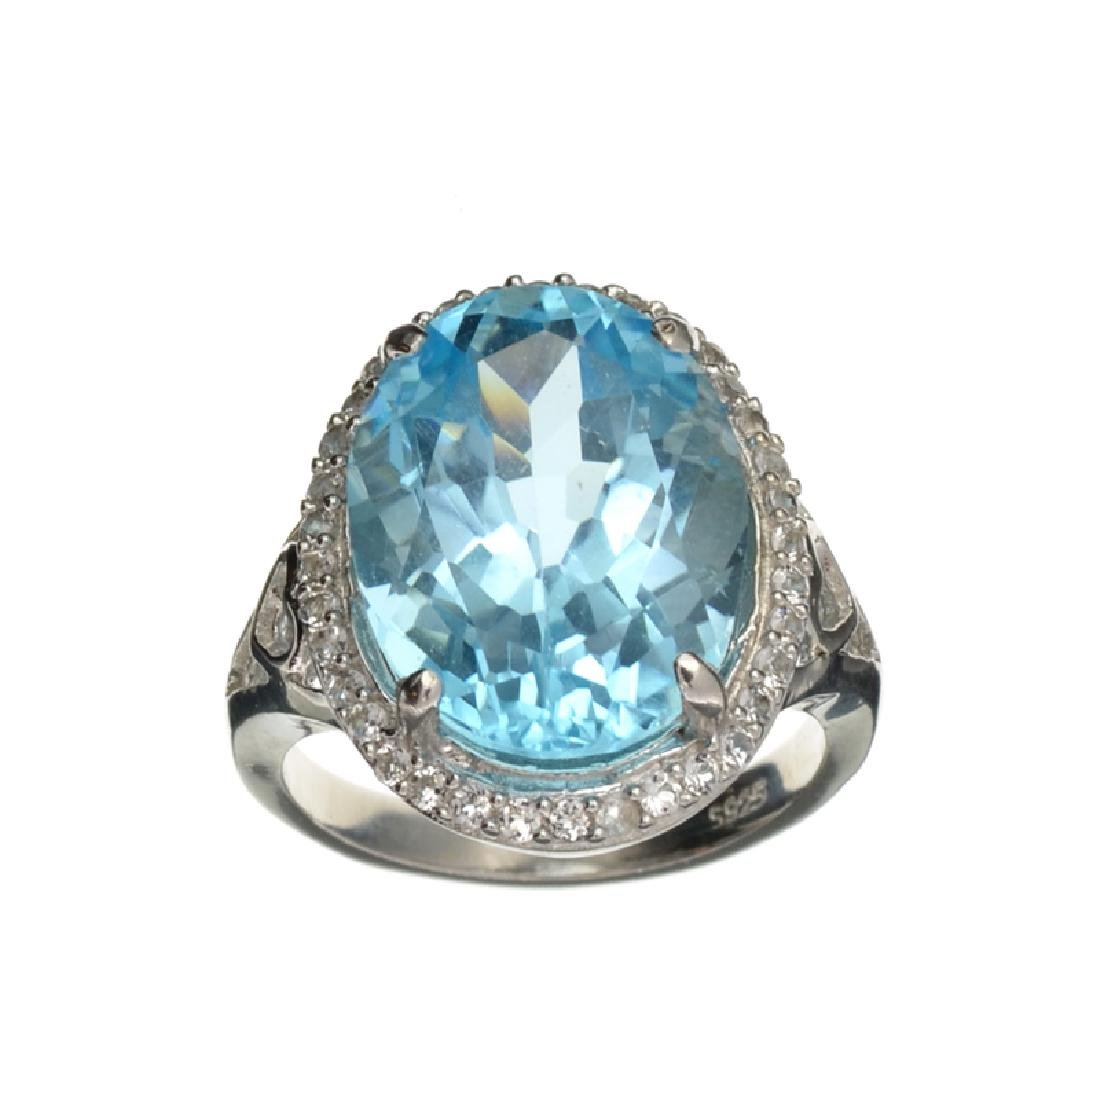 APP: 1k Fine Jewelry 11.05CT Blue Topaz And White